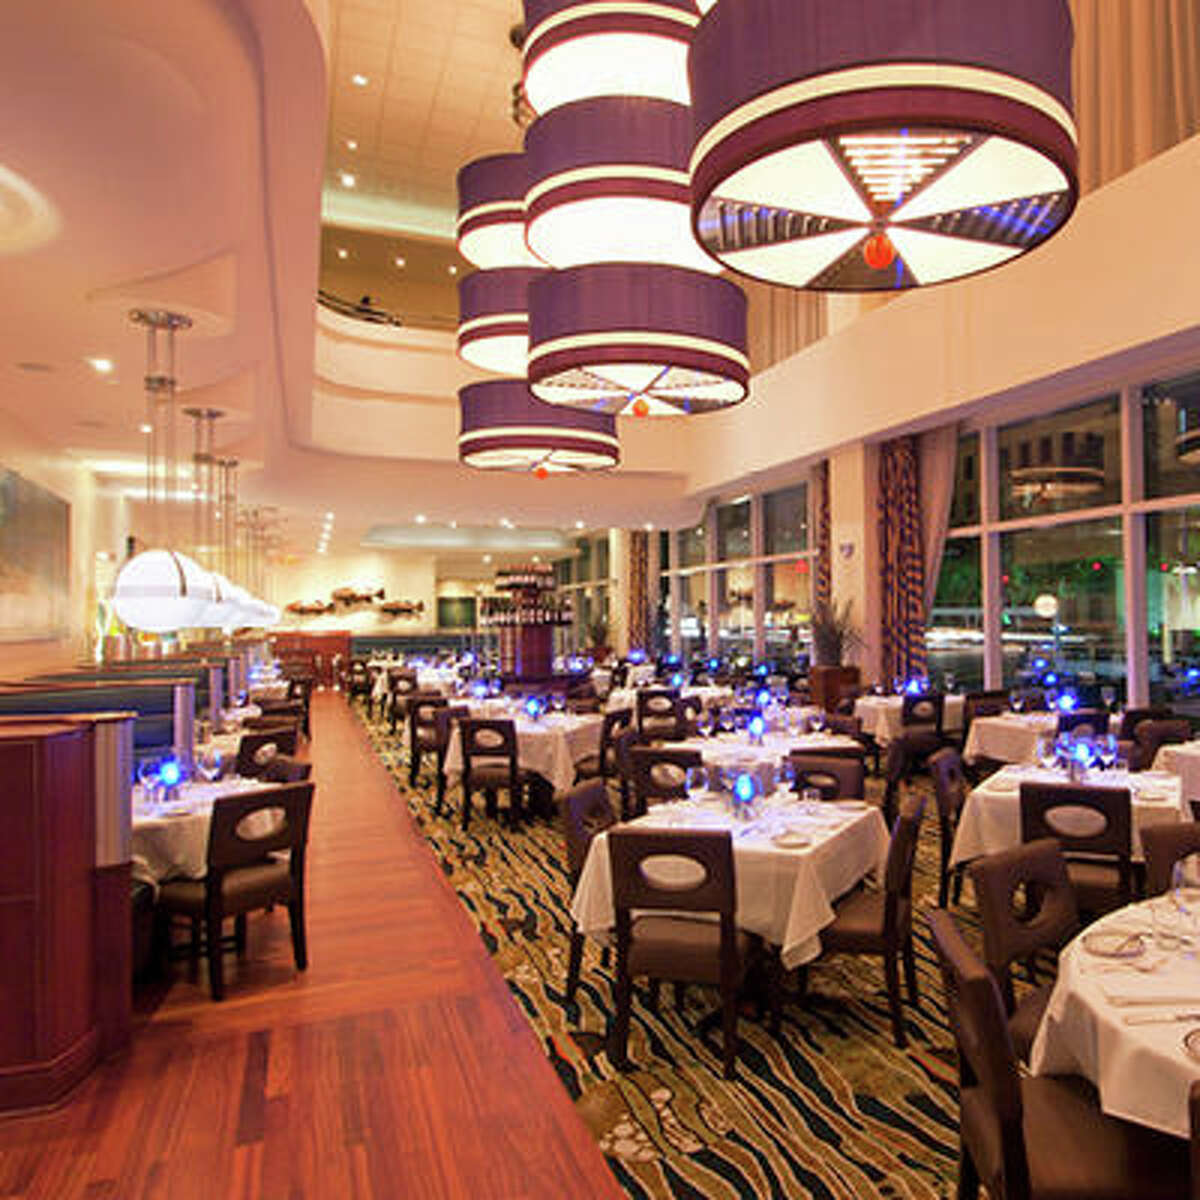 The Oceanaire Seafood Room: This Galleria restaurant,5061 Westheimer, is offering half-priced bottles of wine with the purchase of twoentrées.